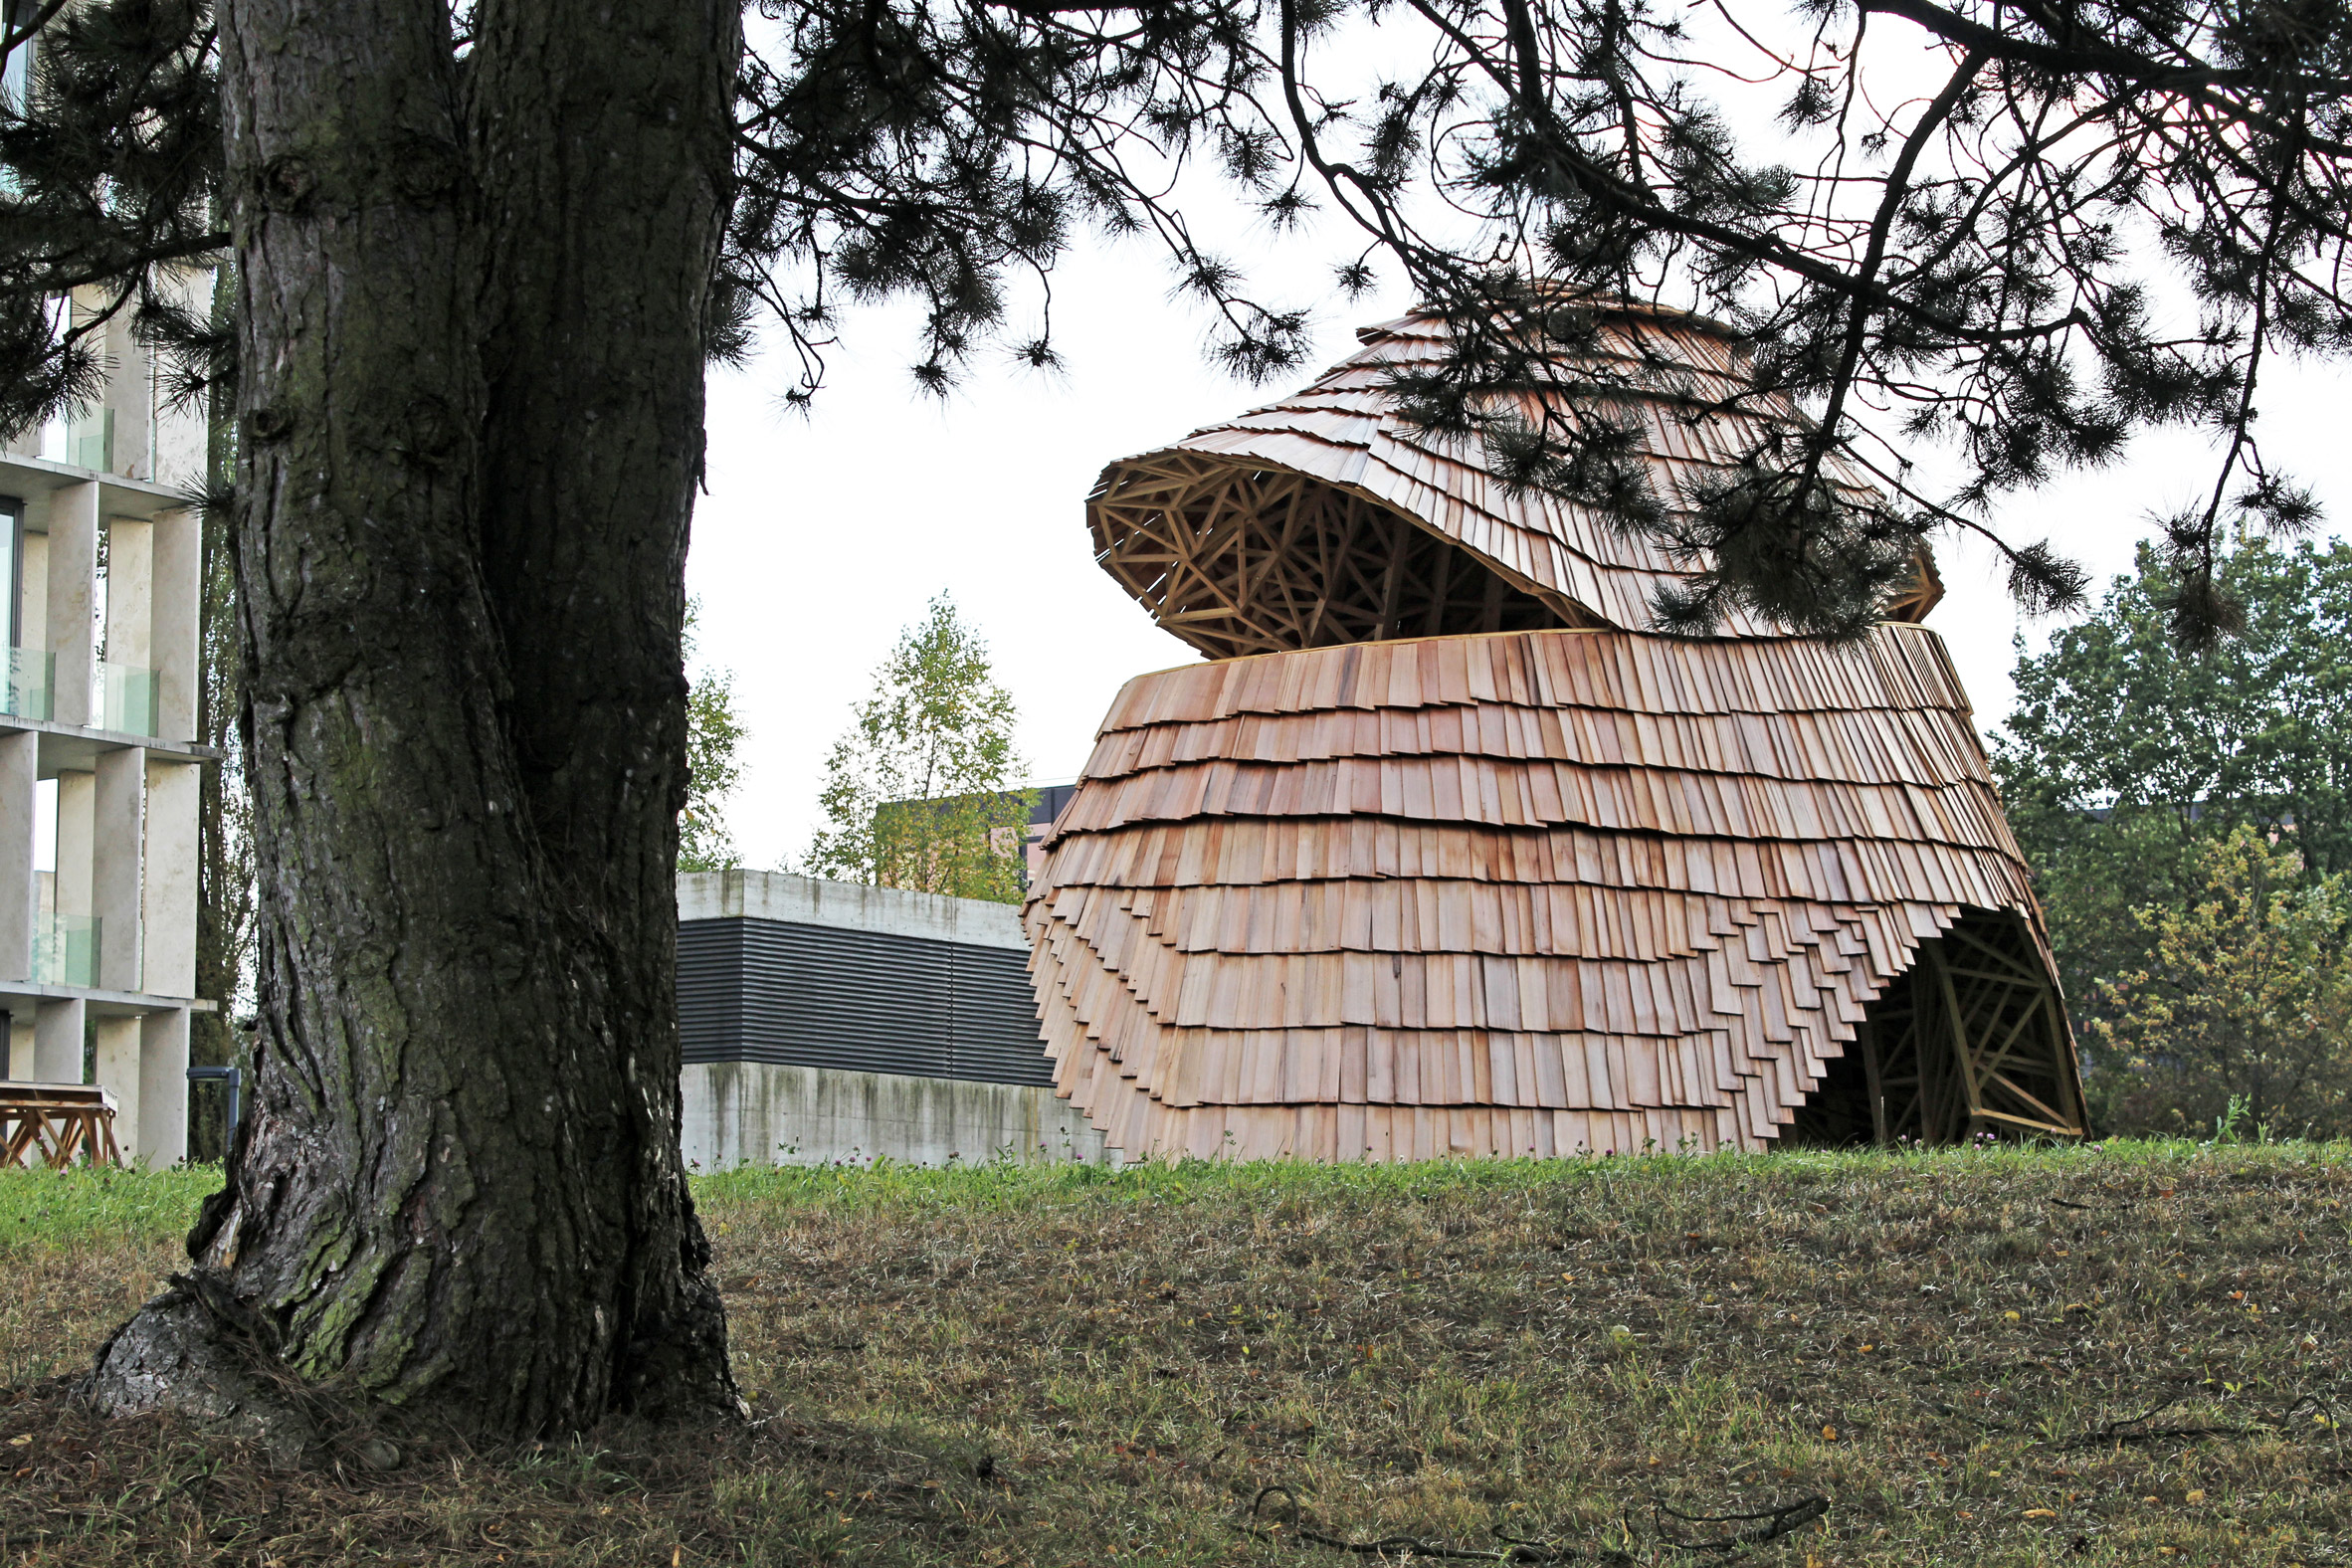 ETH Zurich students create robot-built pavilion with a skin of wooden shingles